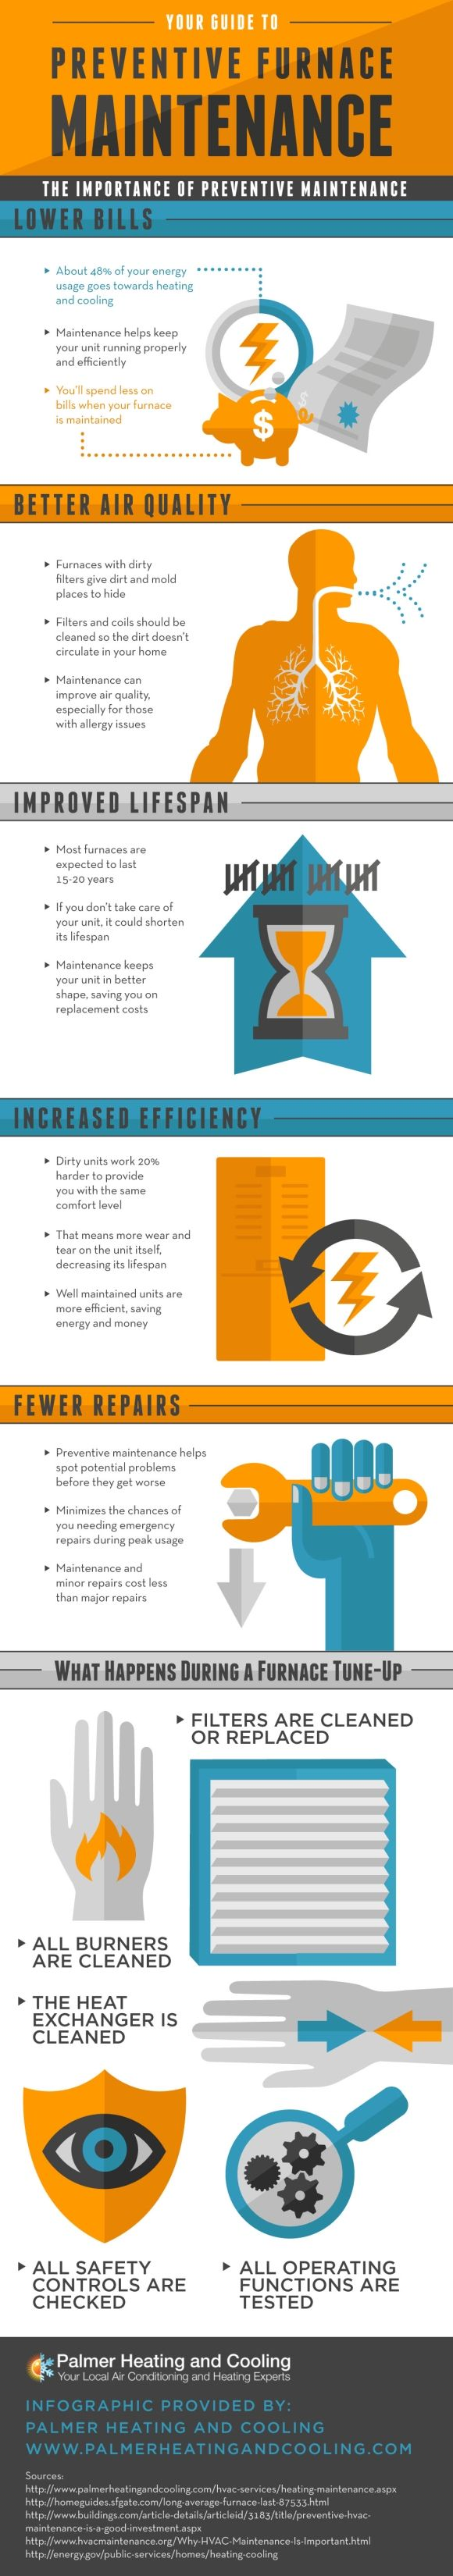 What happens during a furnace tune-up? Professionals clean all burners, clean or replace filters, clean the heat exchanger, check safety controls, and test all operating functions. Take a look at this Bowie HVAC installation infographic to learn more.